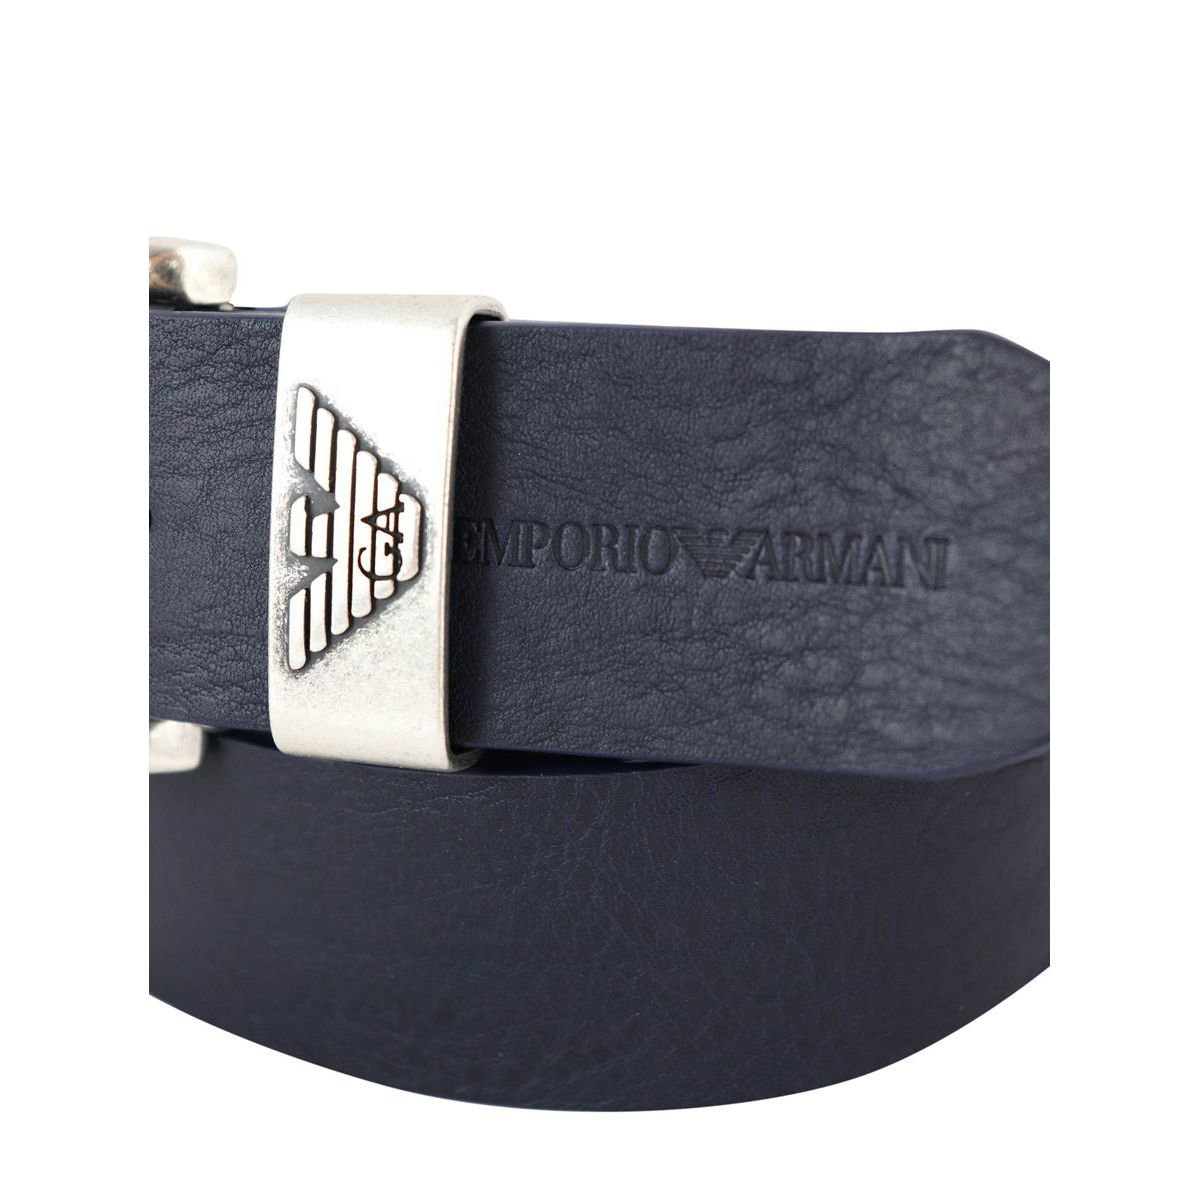 Hammered leather belt with logo engraving Blue Emporio Armani